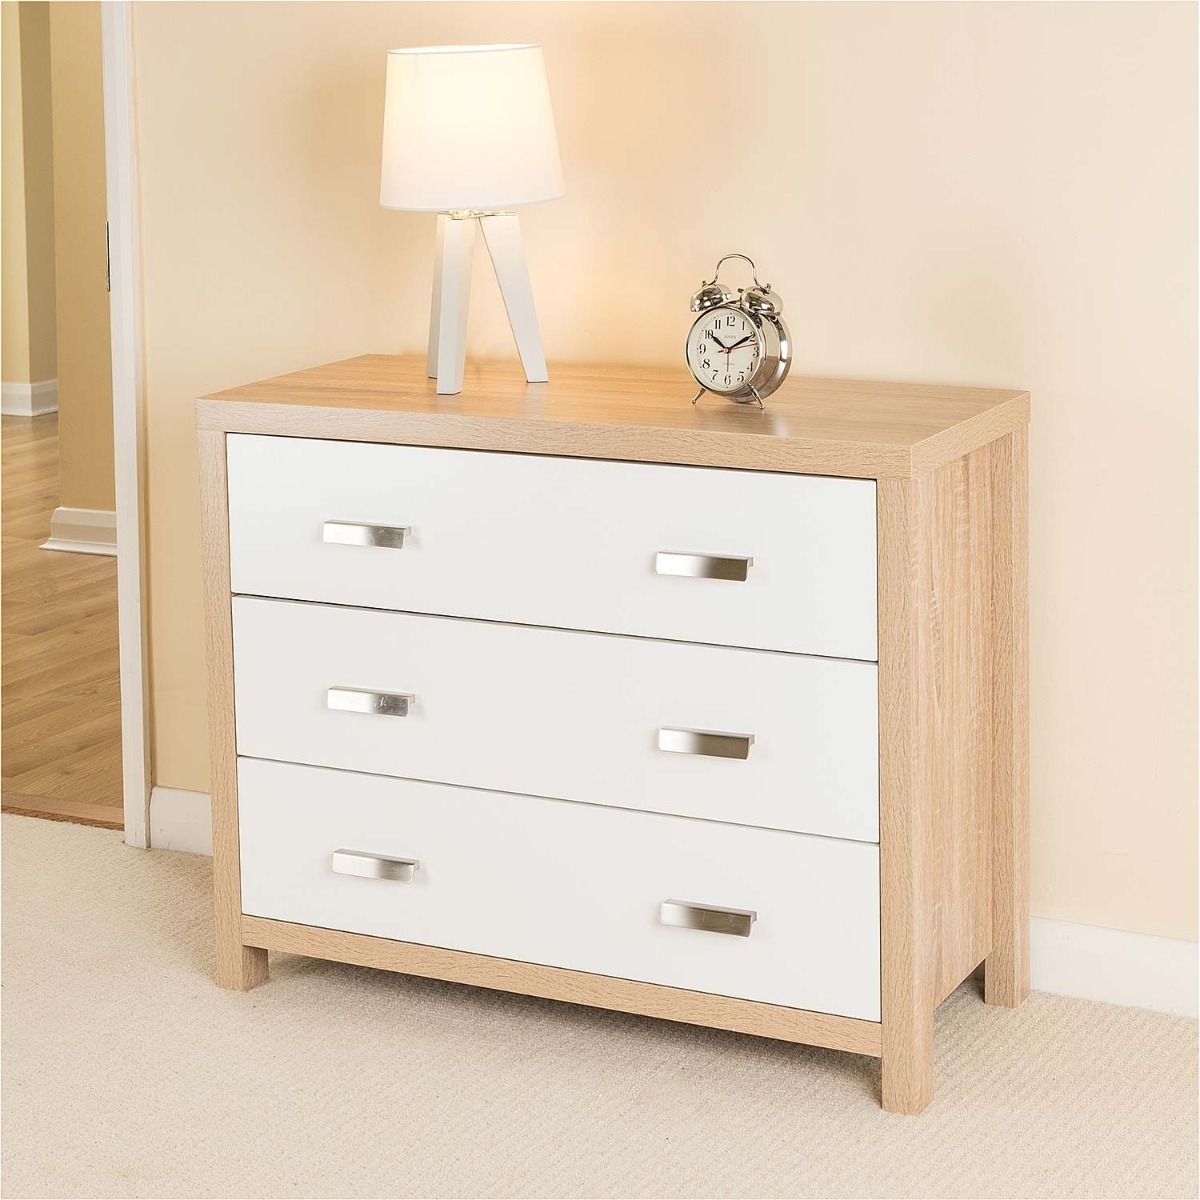 Image of Bianco Oak Effect 3 Drawer Chest